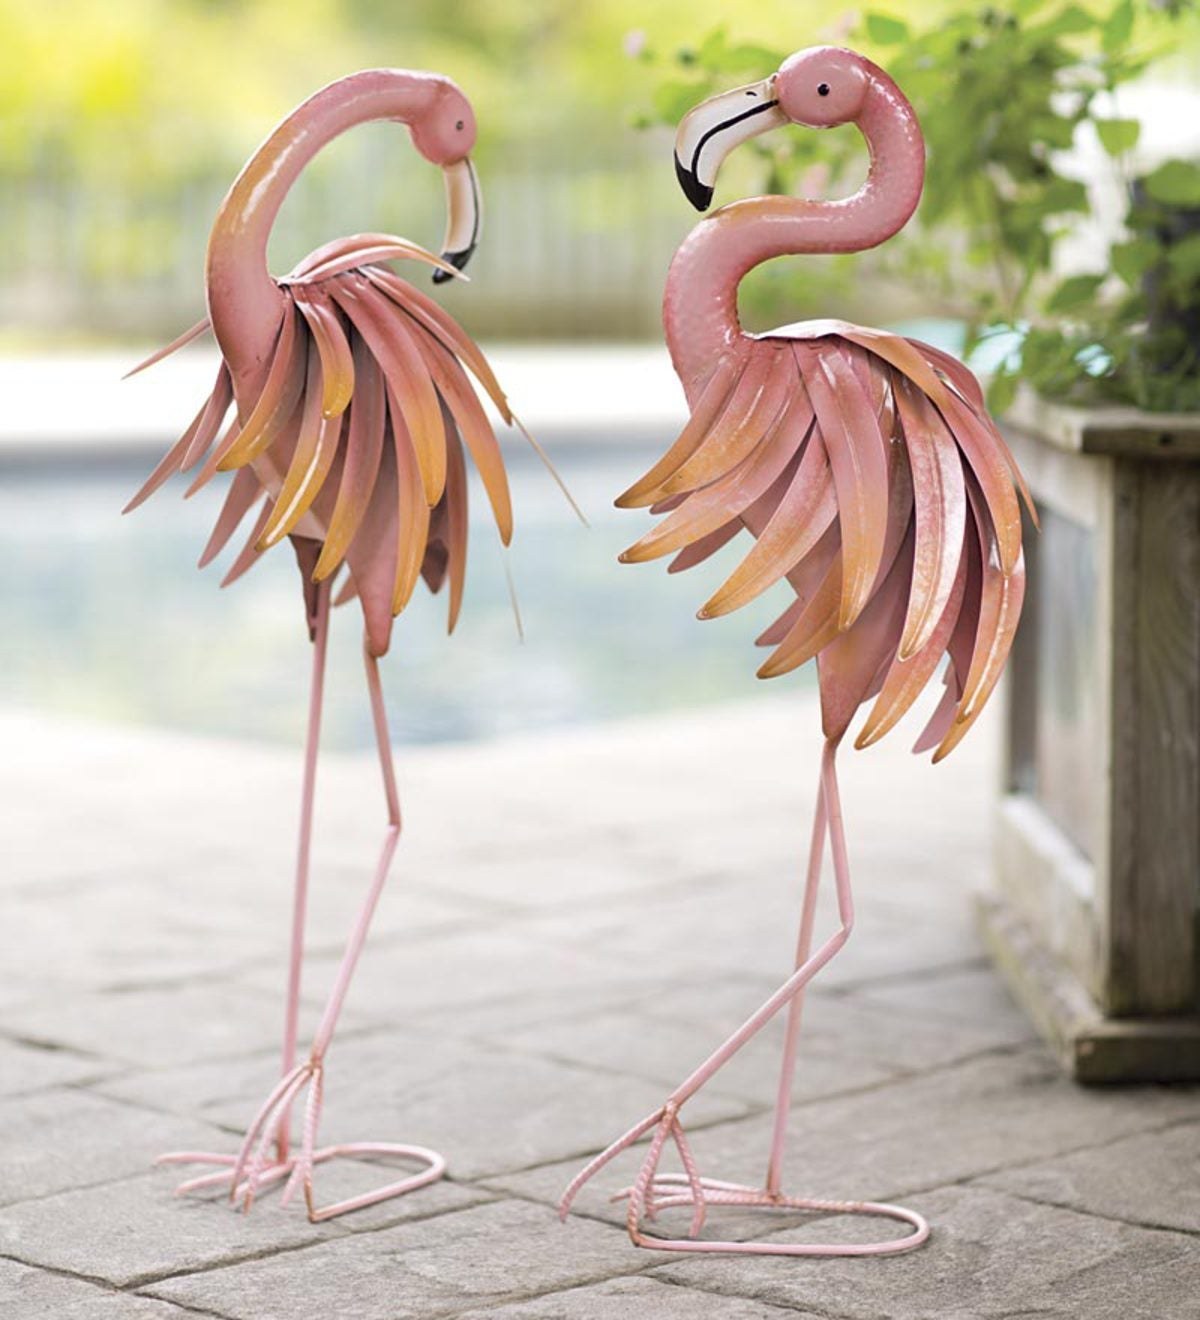 Feather Flamingo Metal Yard Sculptures, Set of 2 | Wind and Weather